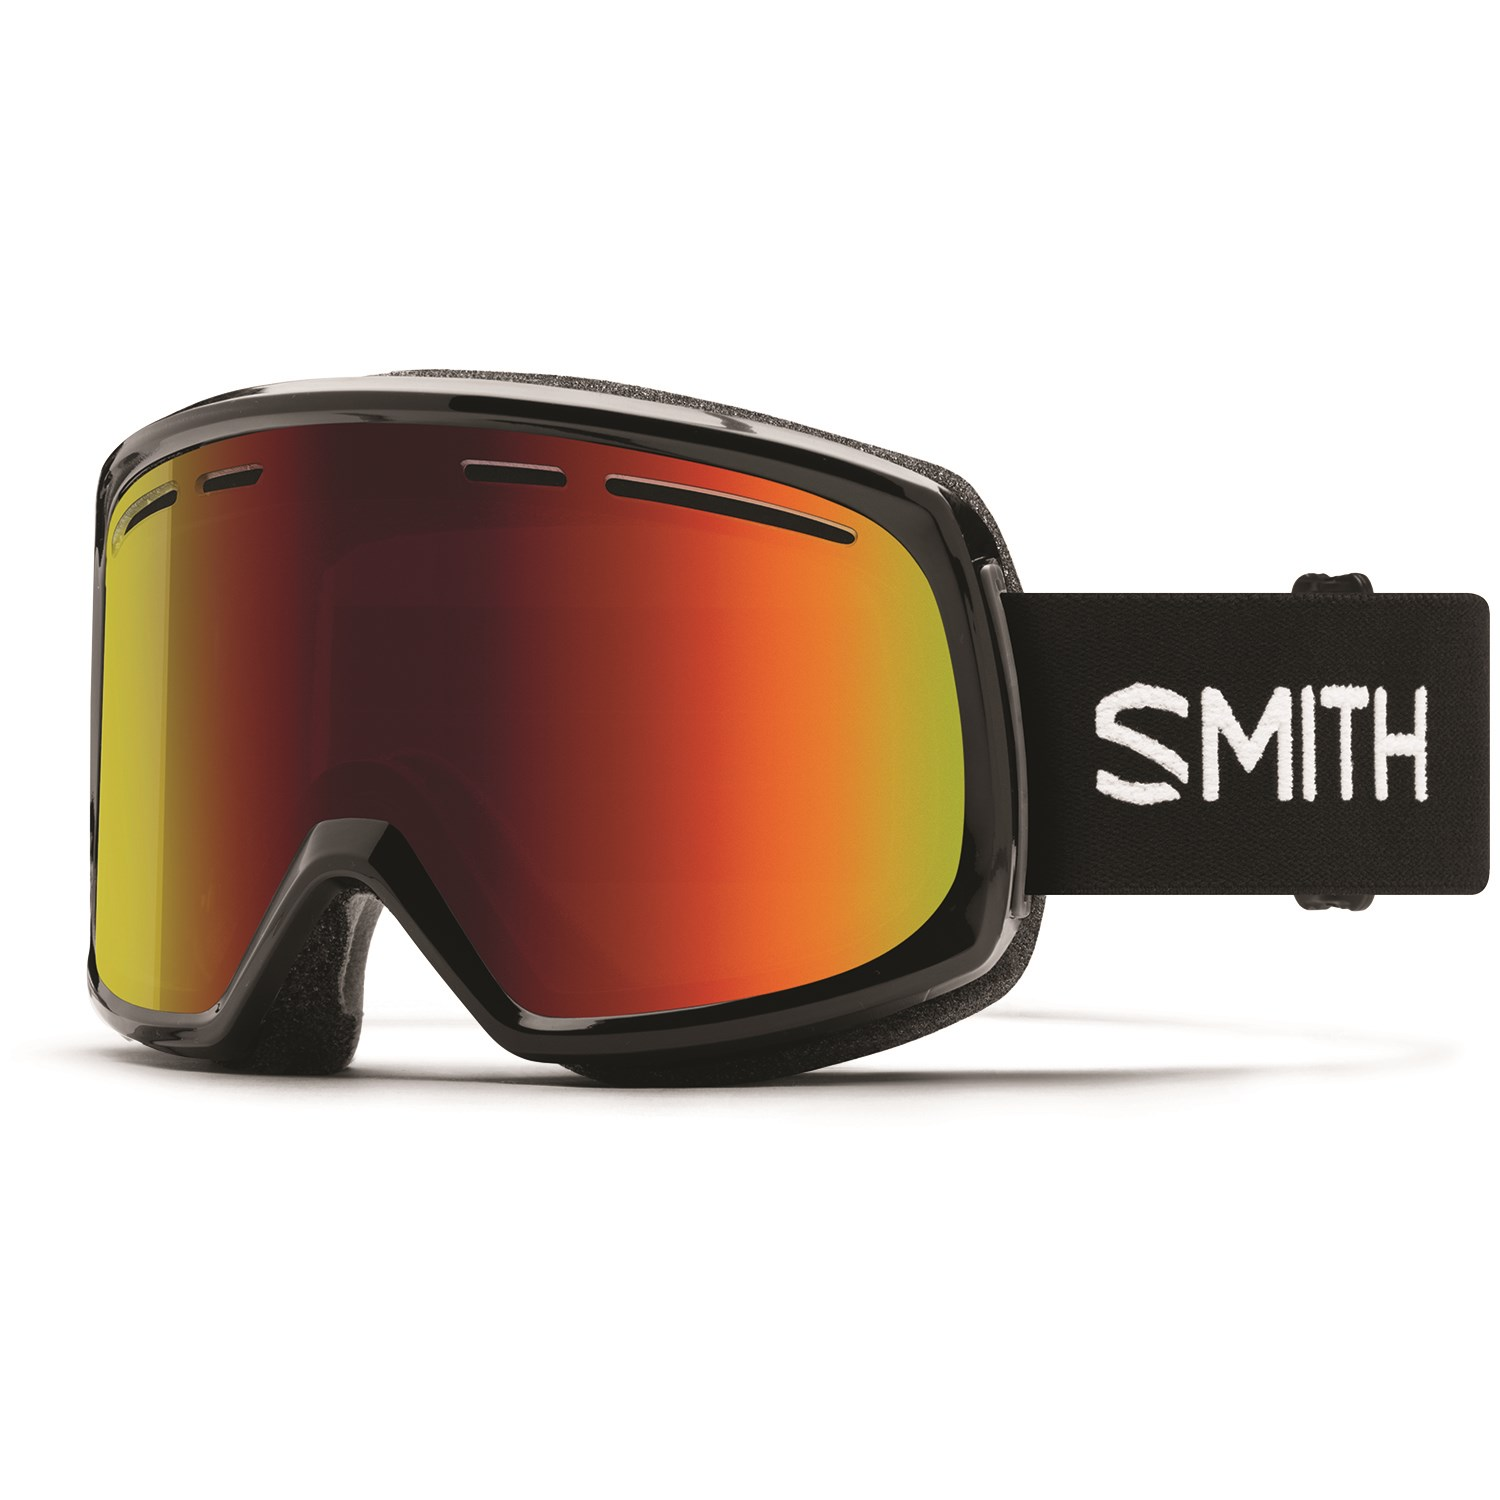 f01dd4f123c Smith Range Goggles